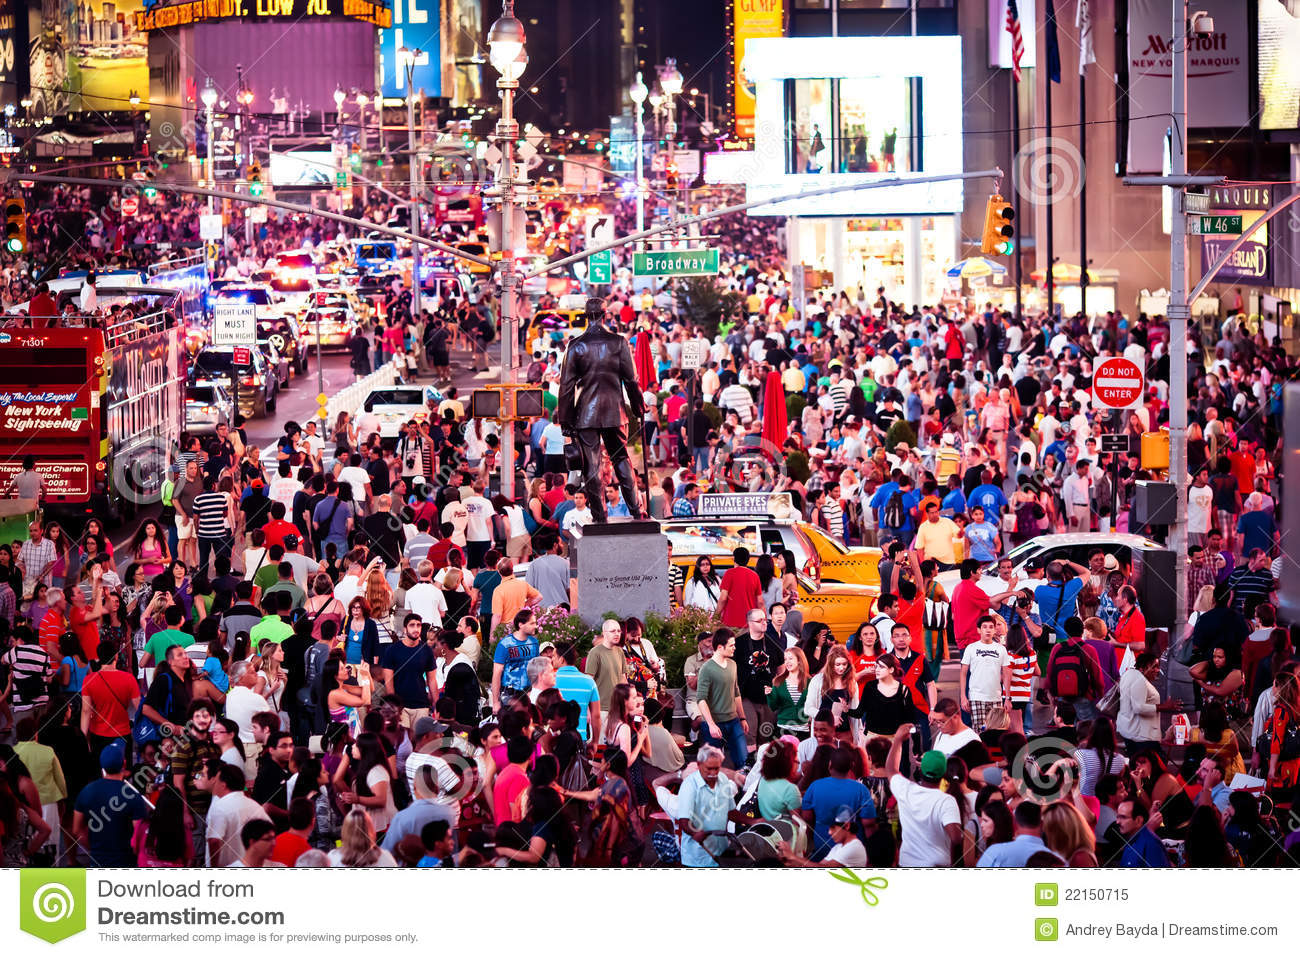 Rush hour at Times Square